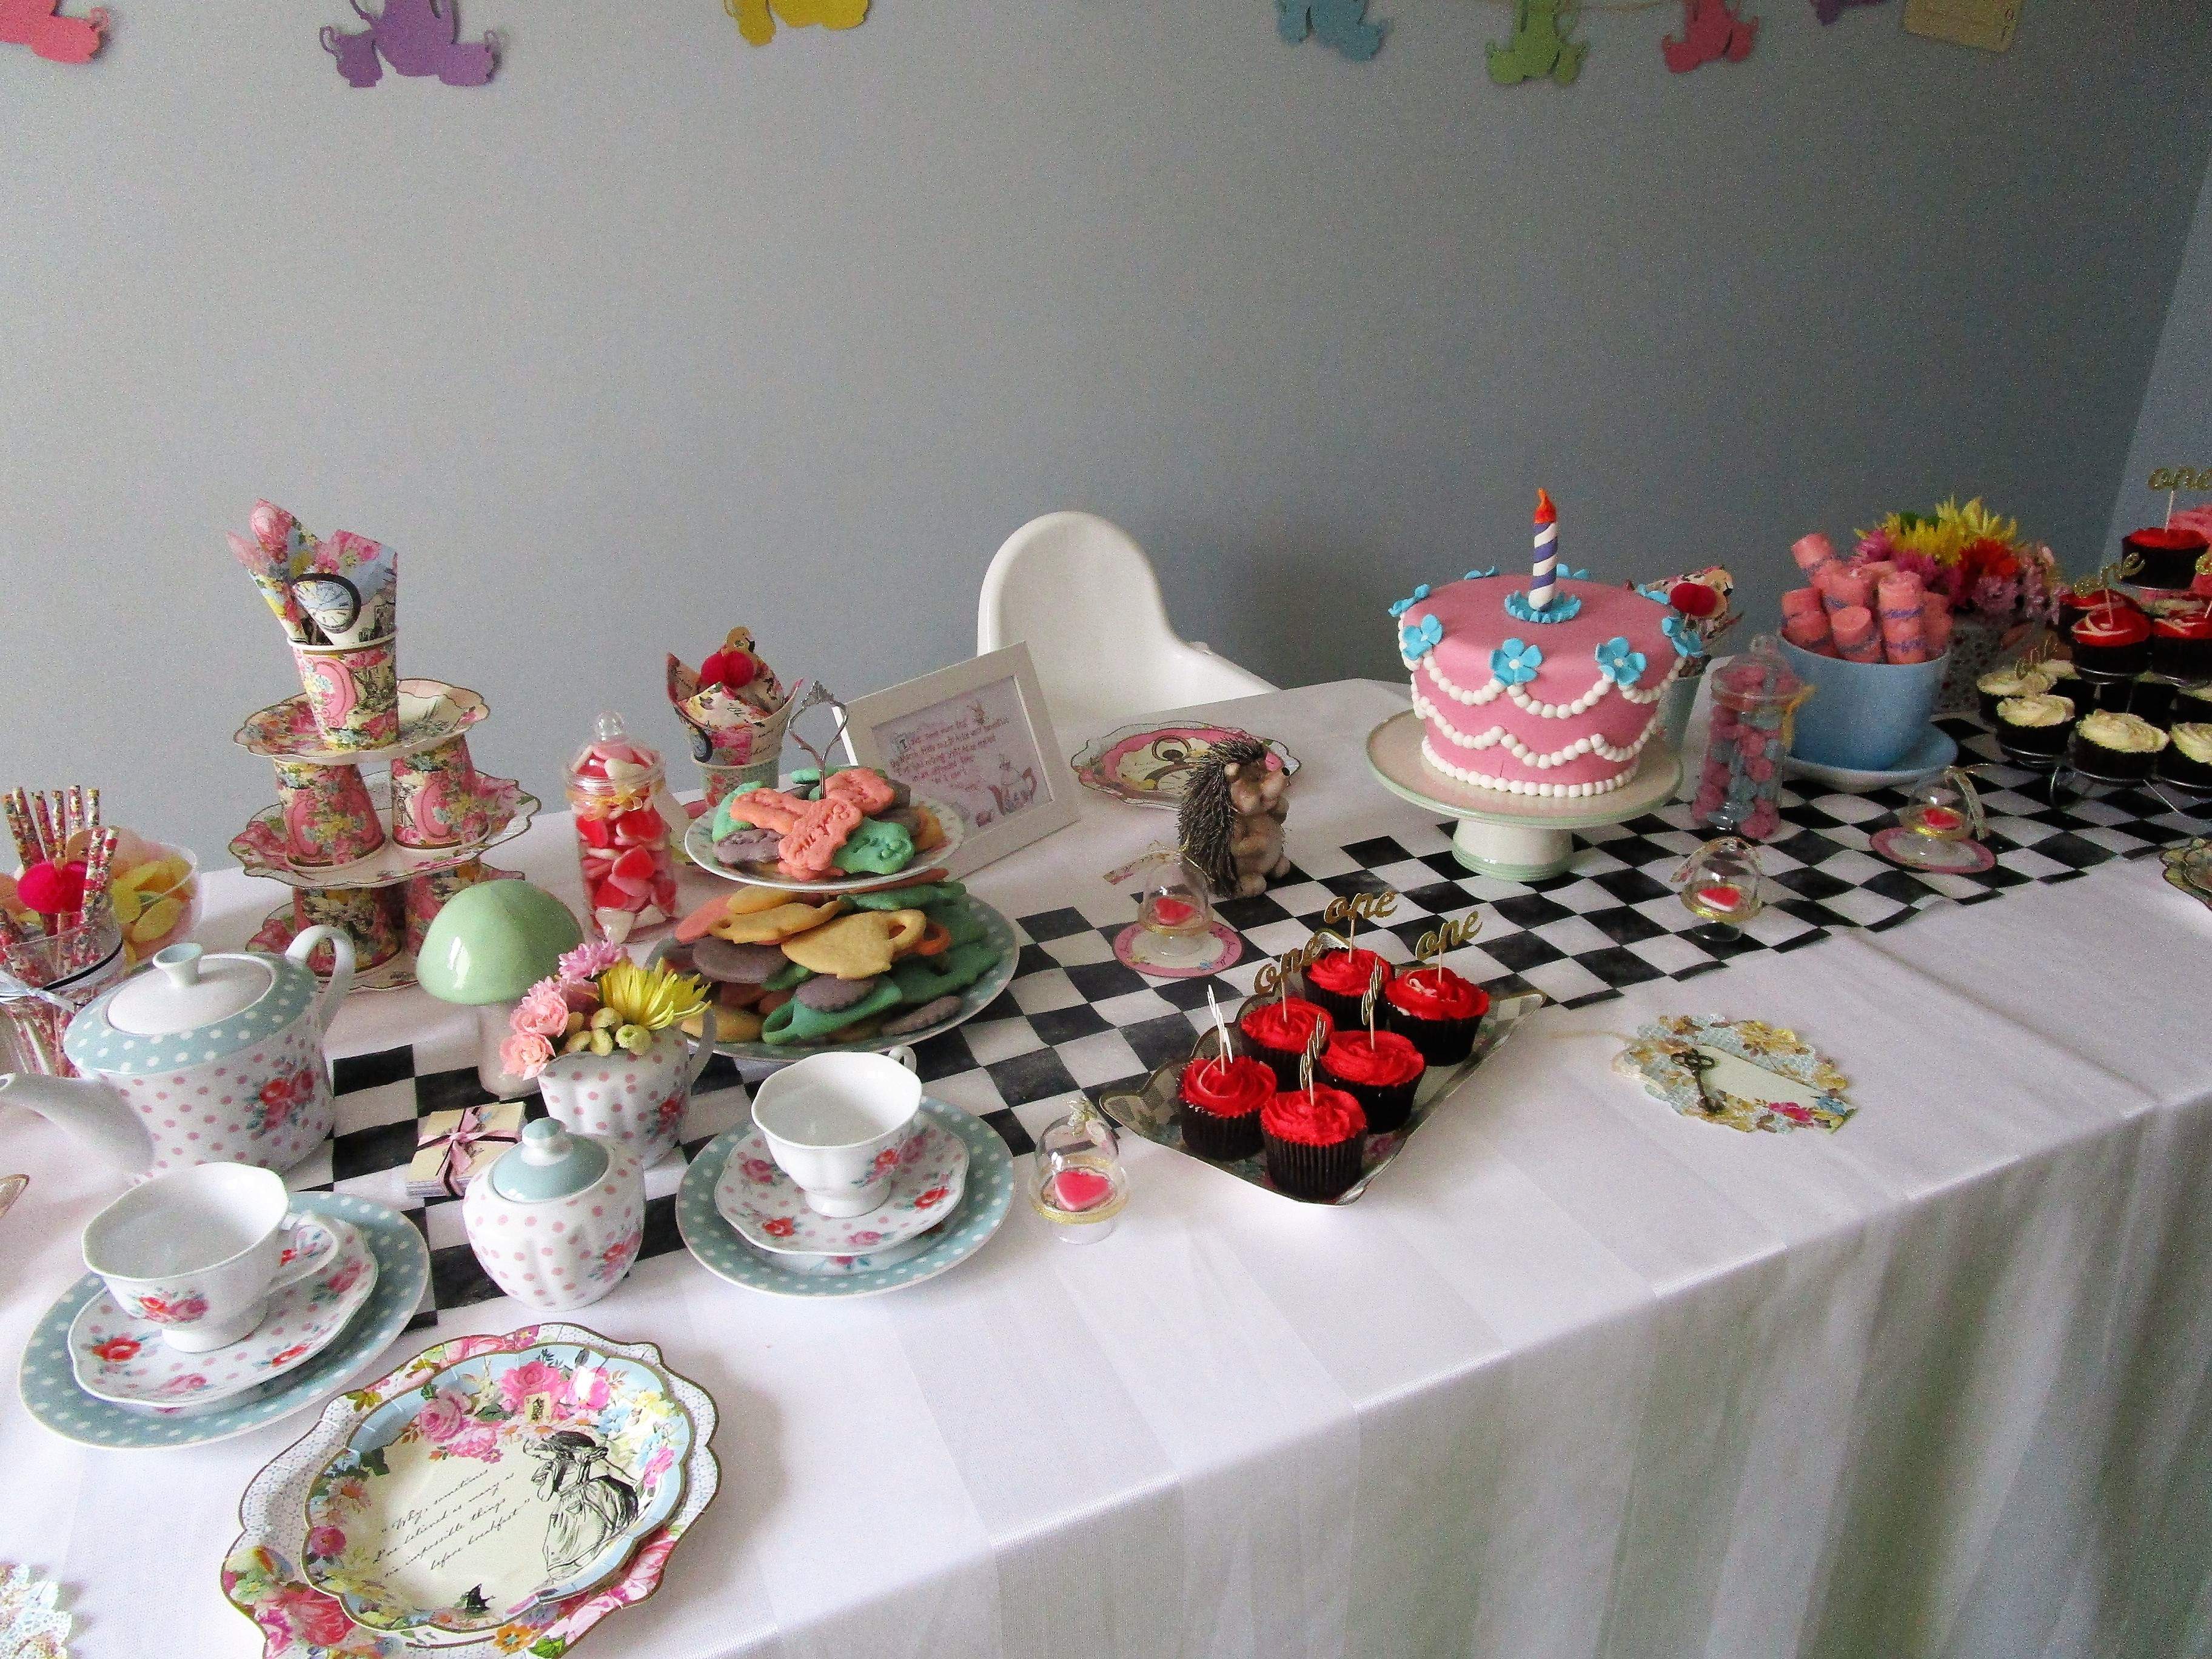 Table Decorations: Table Decorations For Alice In Wonderland Party